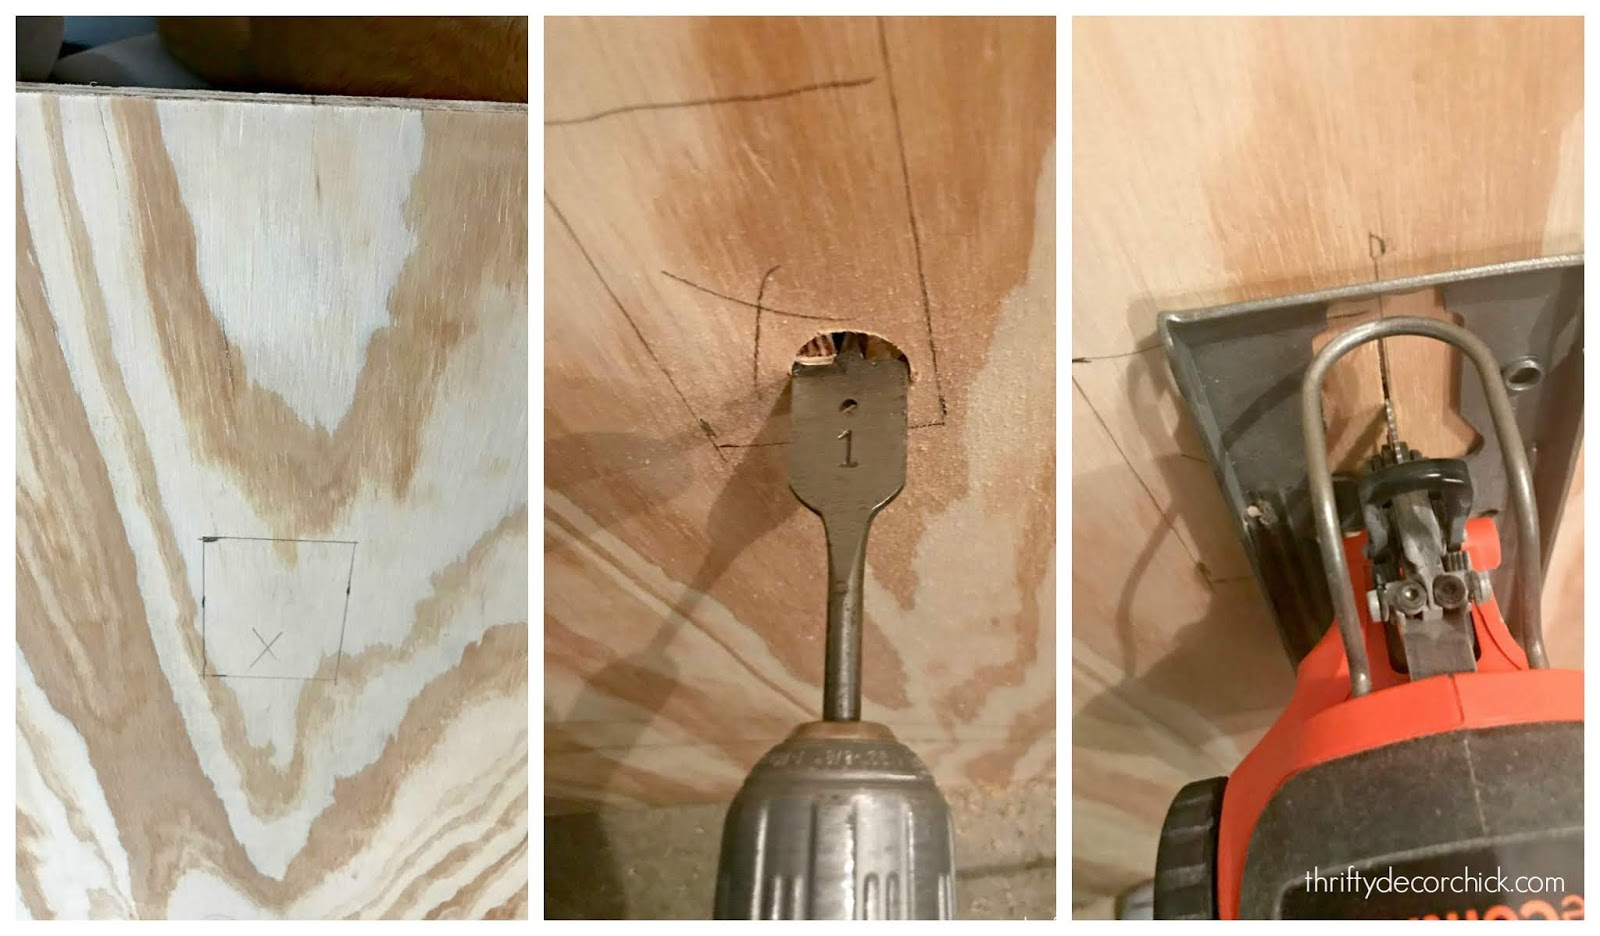 How to cut hole in wood for outlet